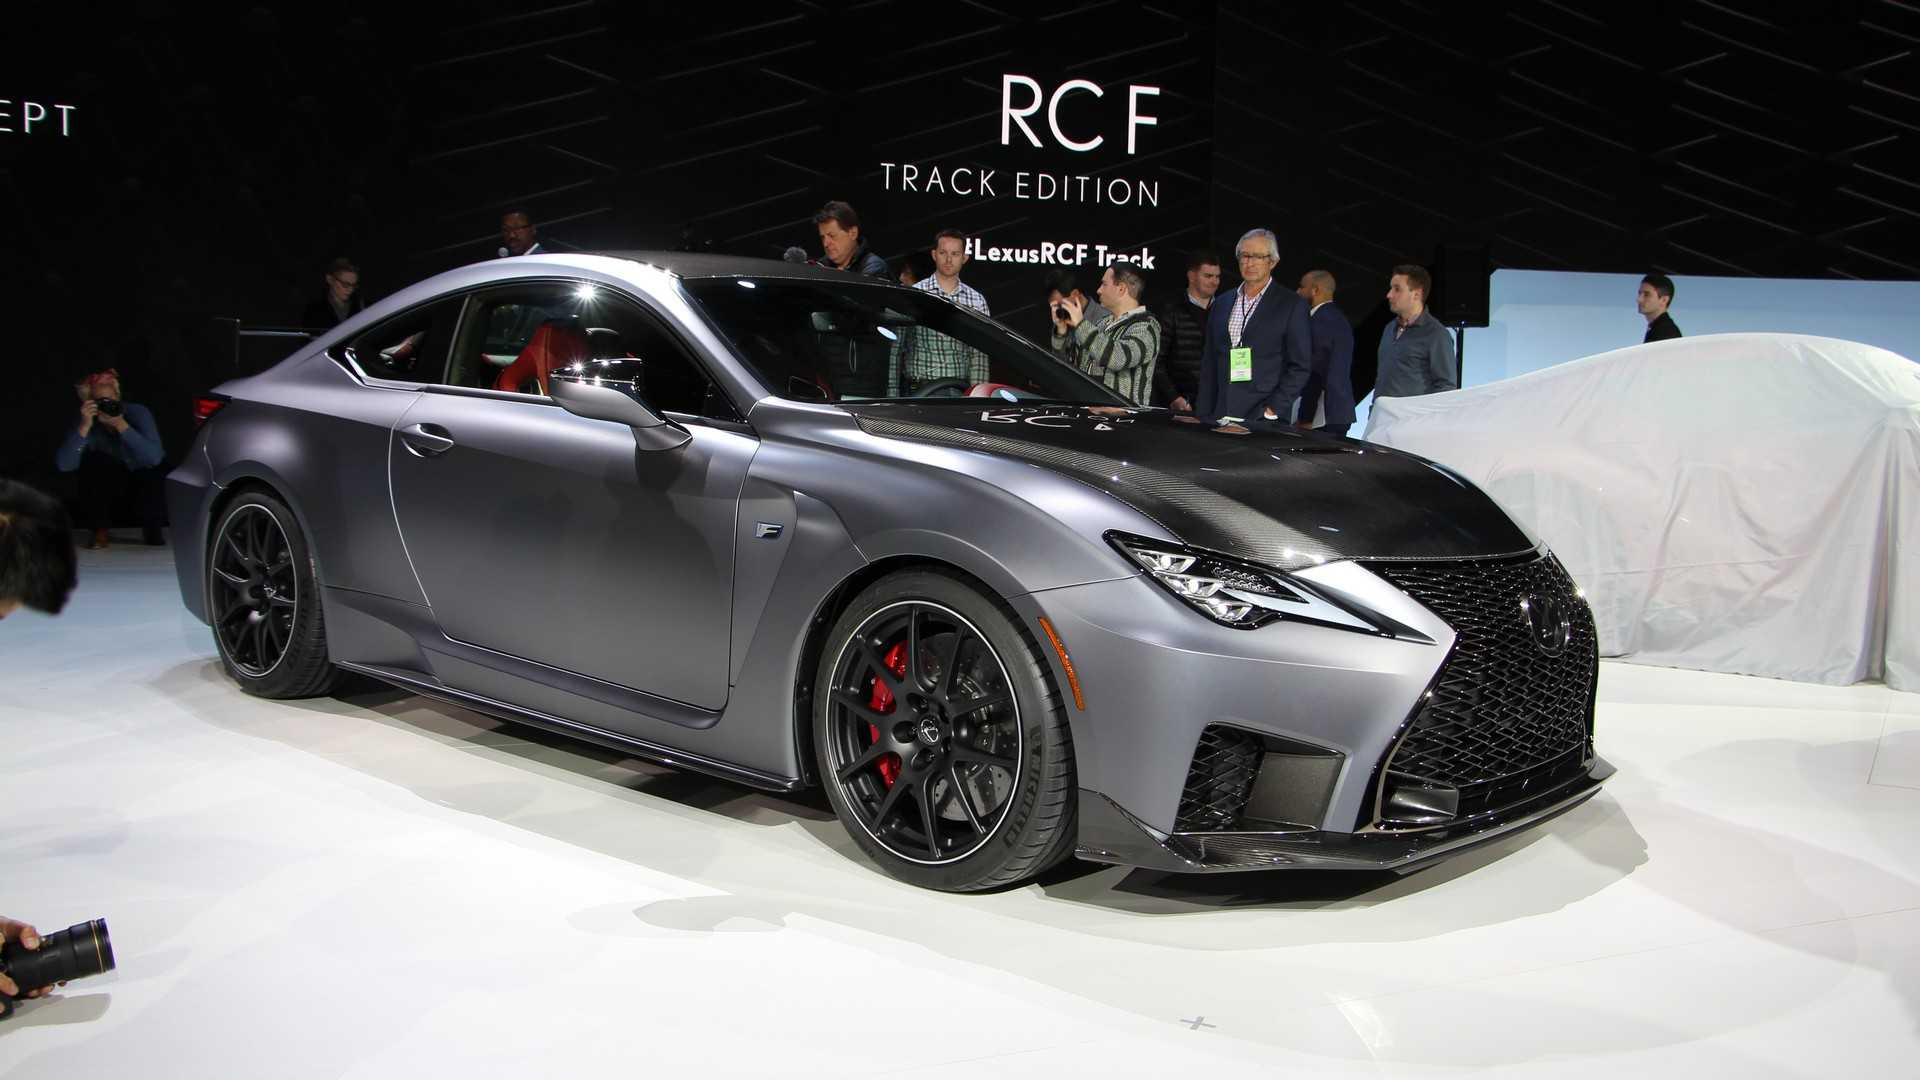 71 Best Rcf Lexus 2019 Rumors